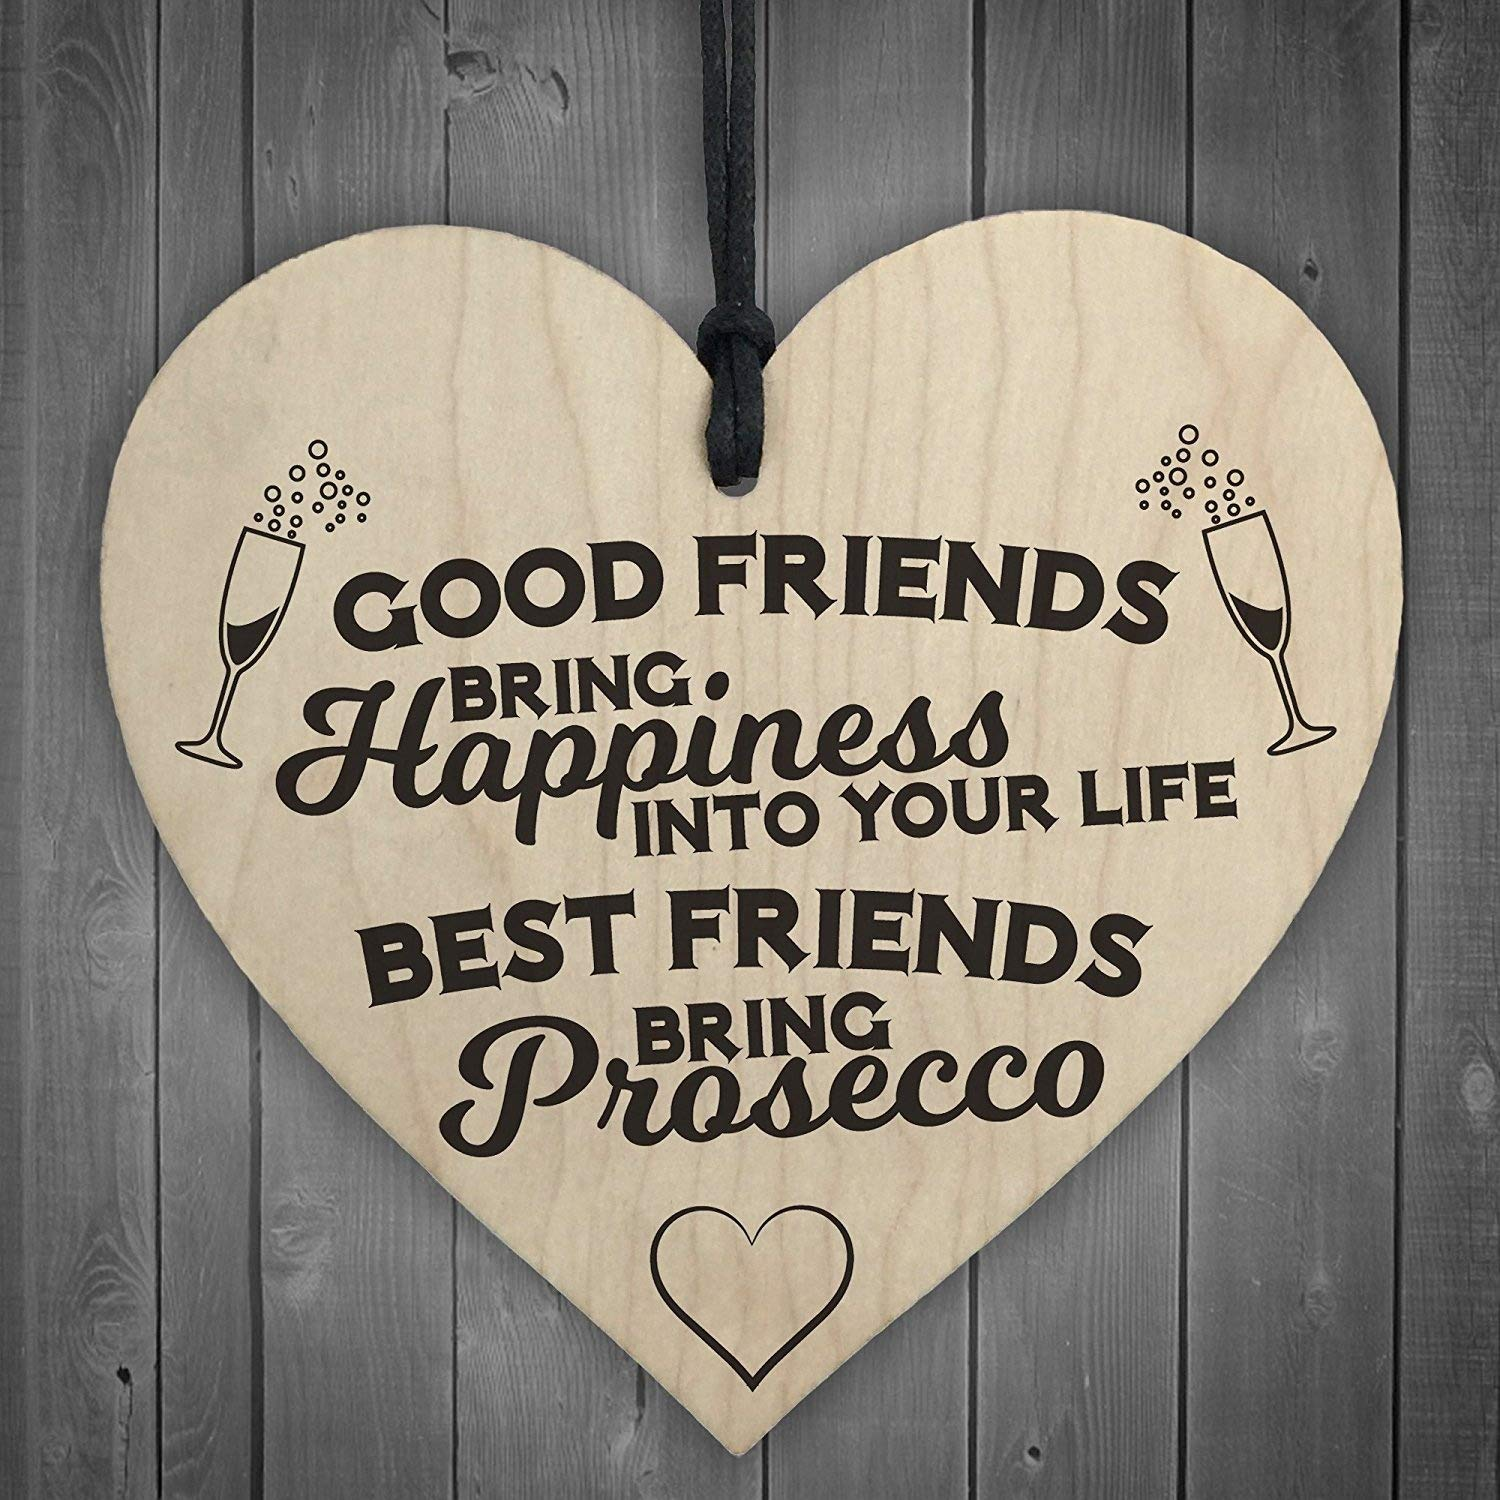 RED OCEAN Best Friends Bring Prosecco Wooden Hanging Heart Plaque Novelty Alcohol Sign